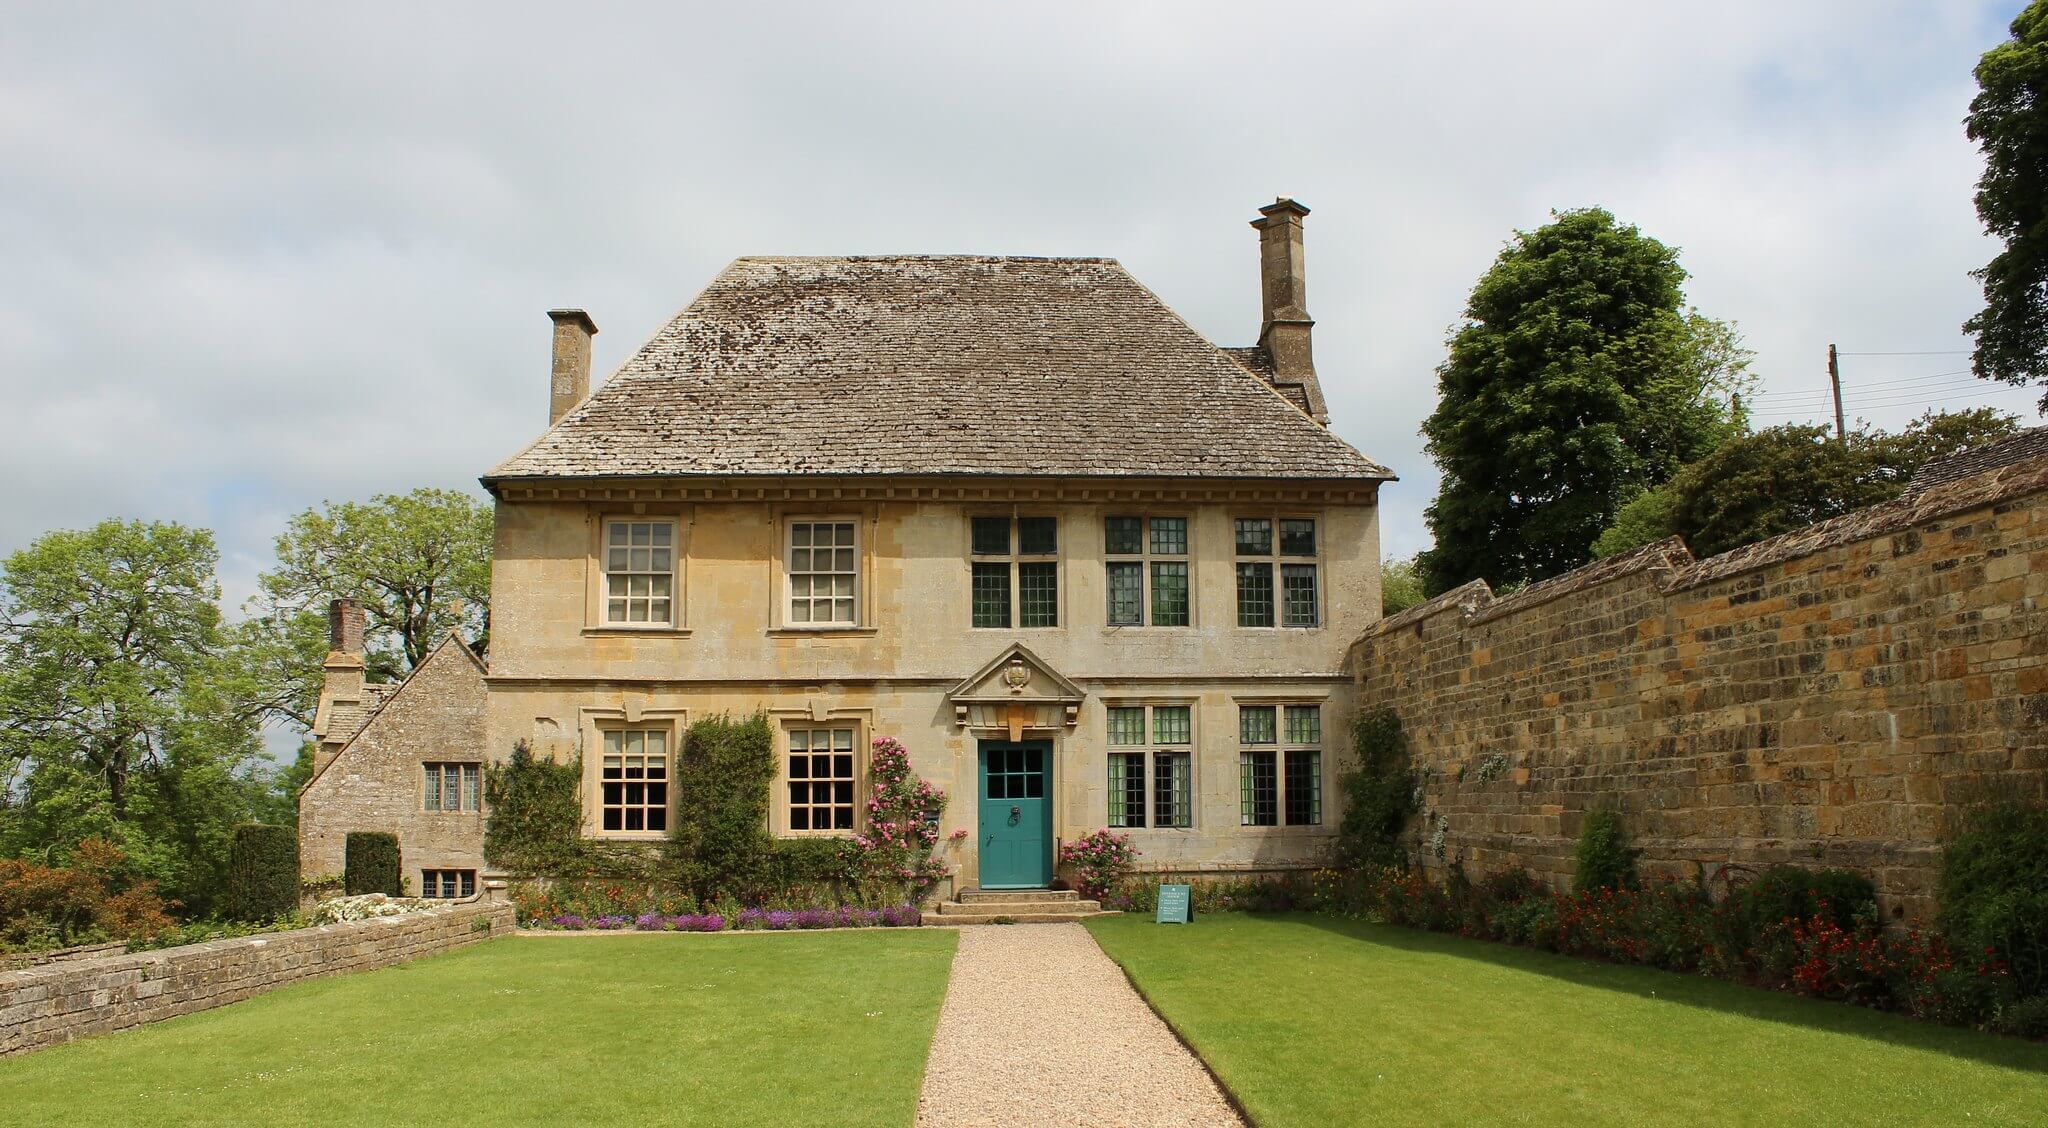 A photograph of Snowshill Manor